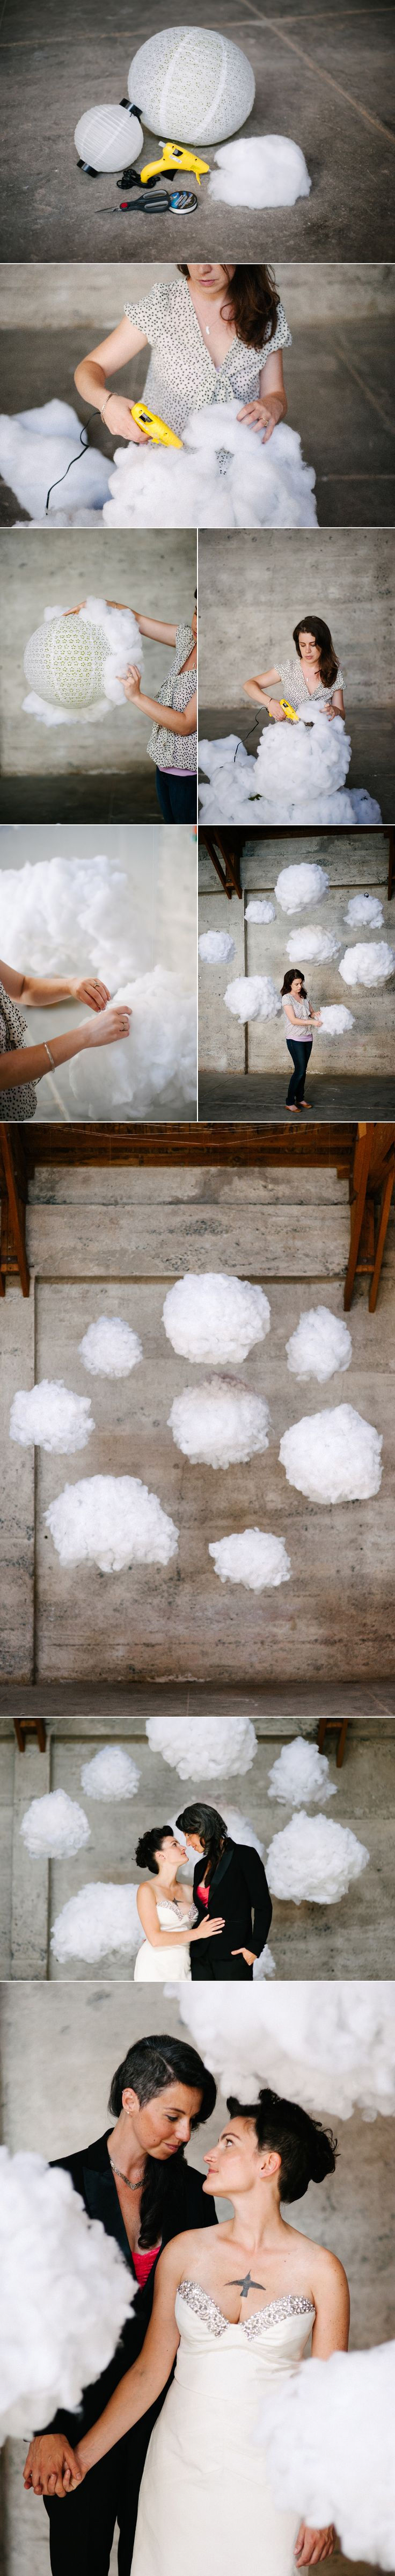 DIY Clouds - for a photoshoot, or a kids room / nursery ... anywhere!!